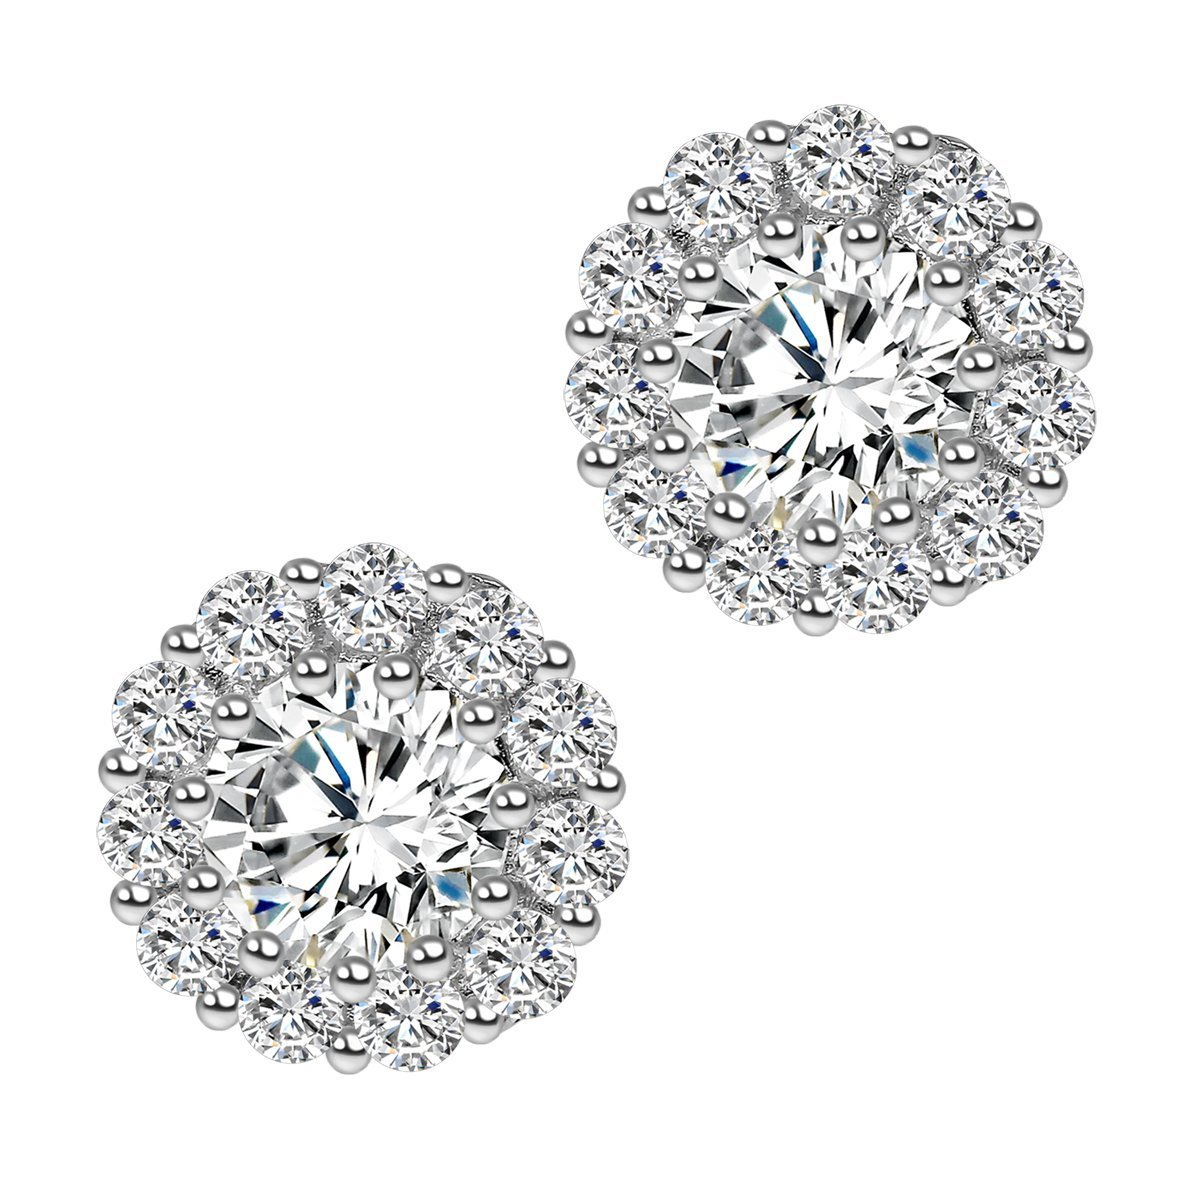 3df25ca0a Cuccu Cubic Zirconia Stud Round Flower Earrings Silver Tone 9MM for Women  and Girls Fashion Jewelry